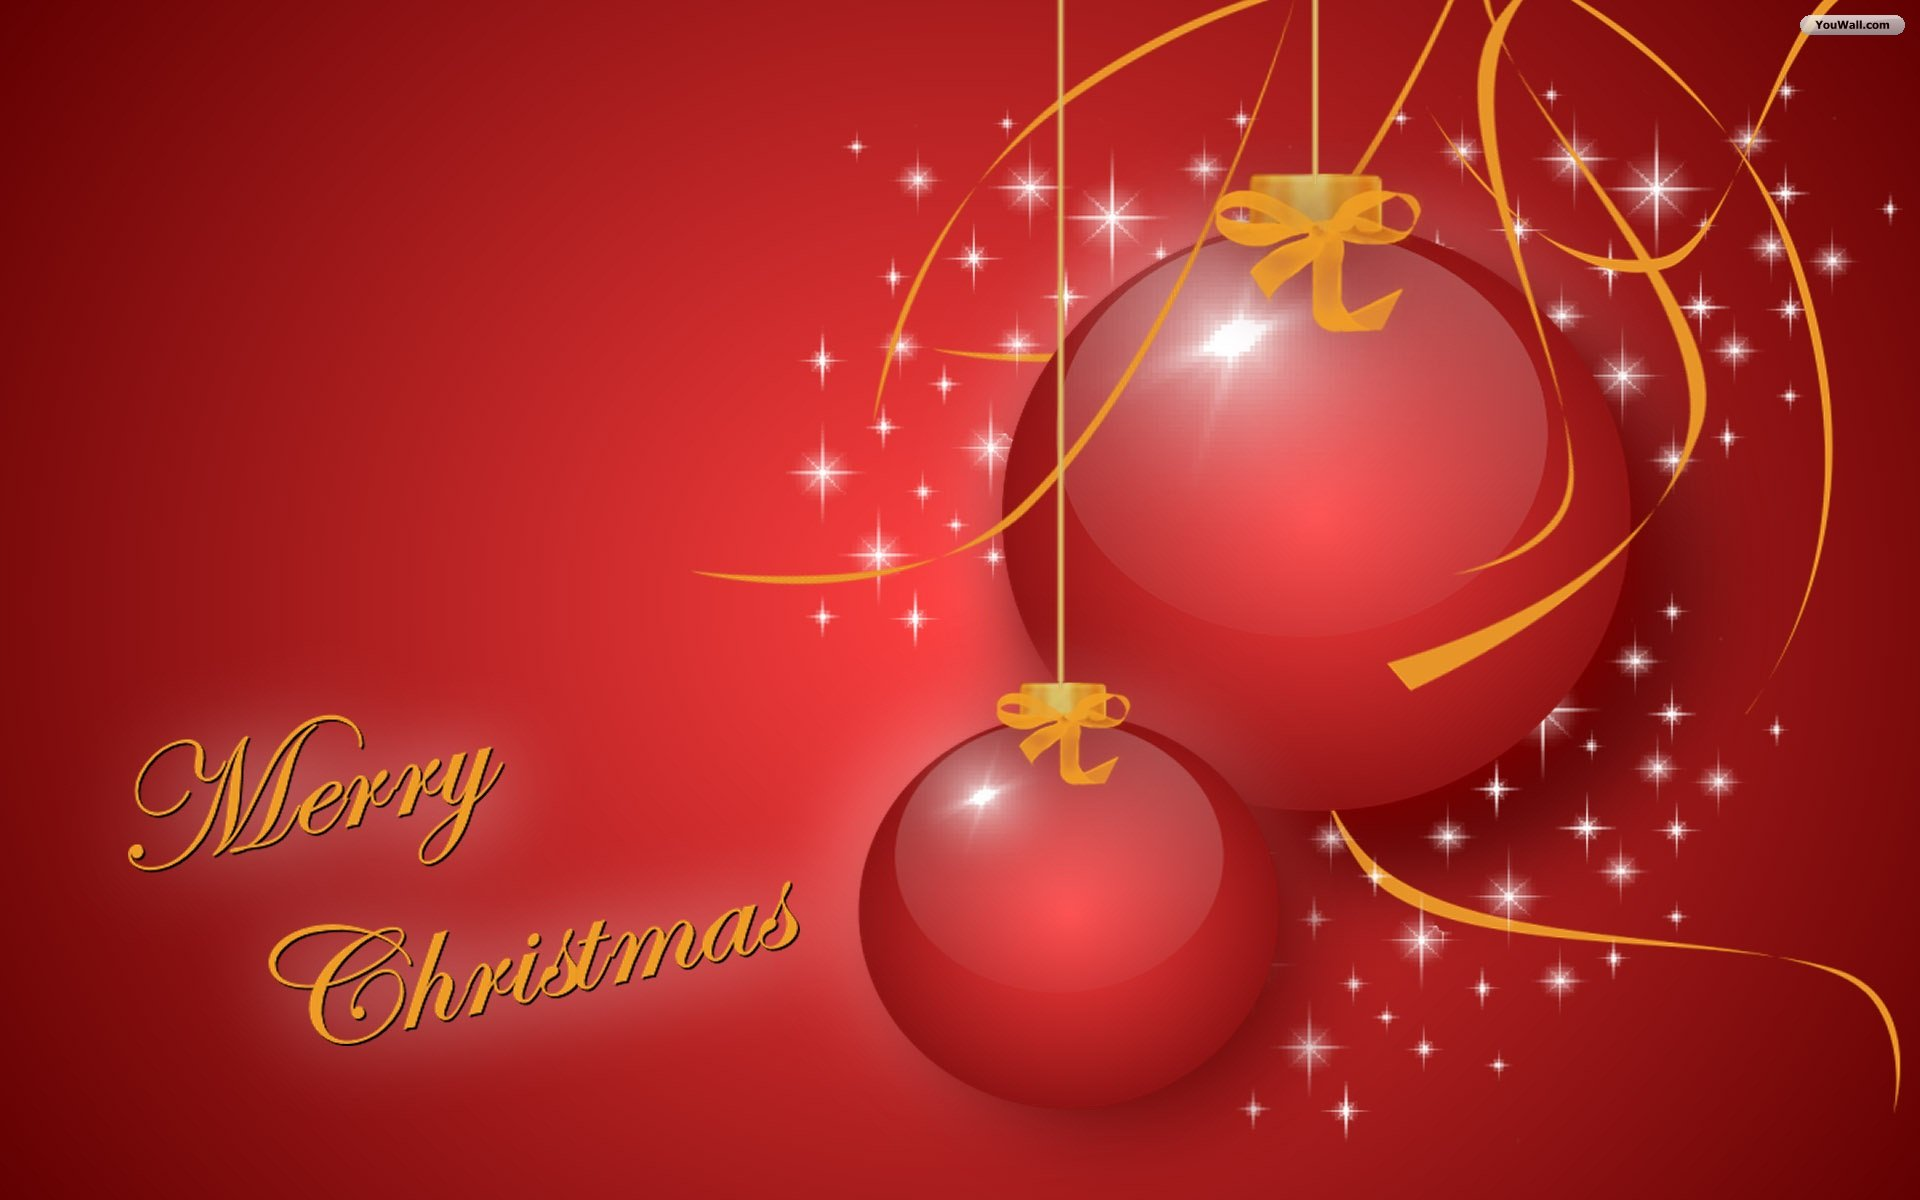 trentgwenfan1 images Merry Christmas HD wallpaper and